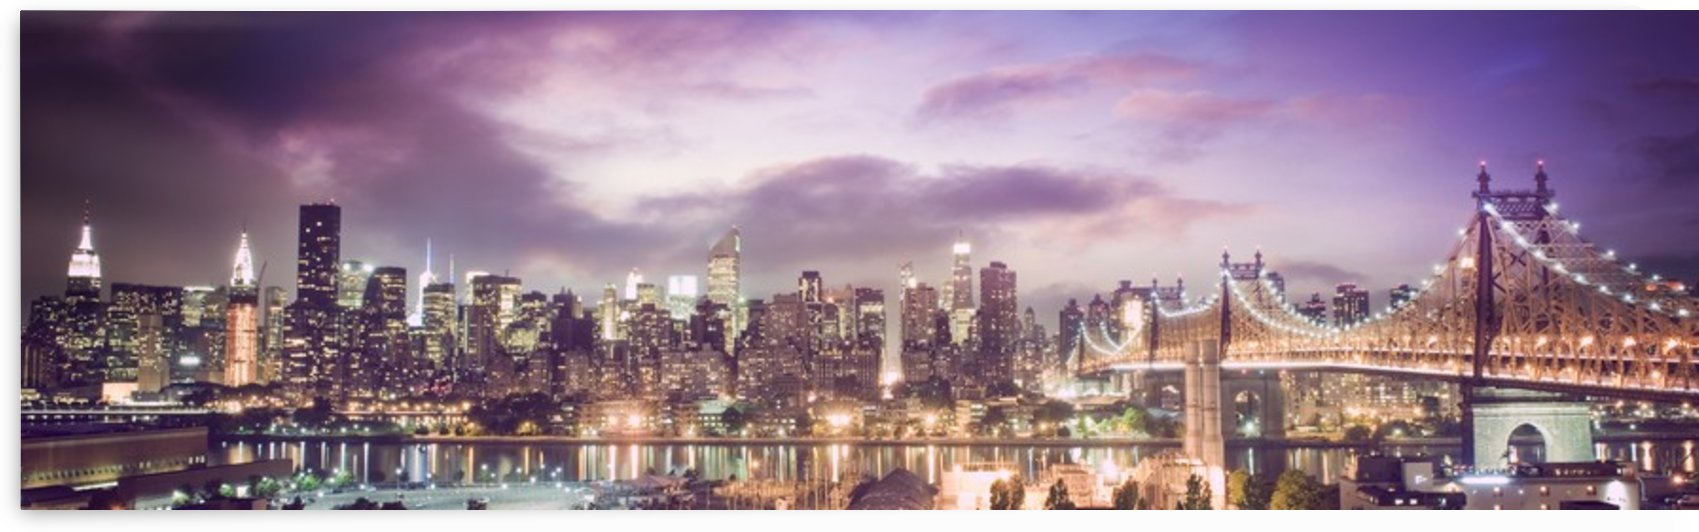 New York Cityscape by Christopher Dormoy